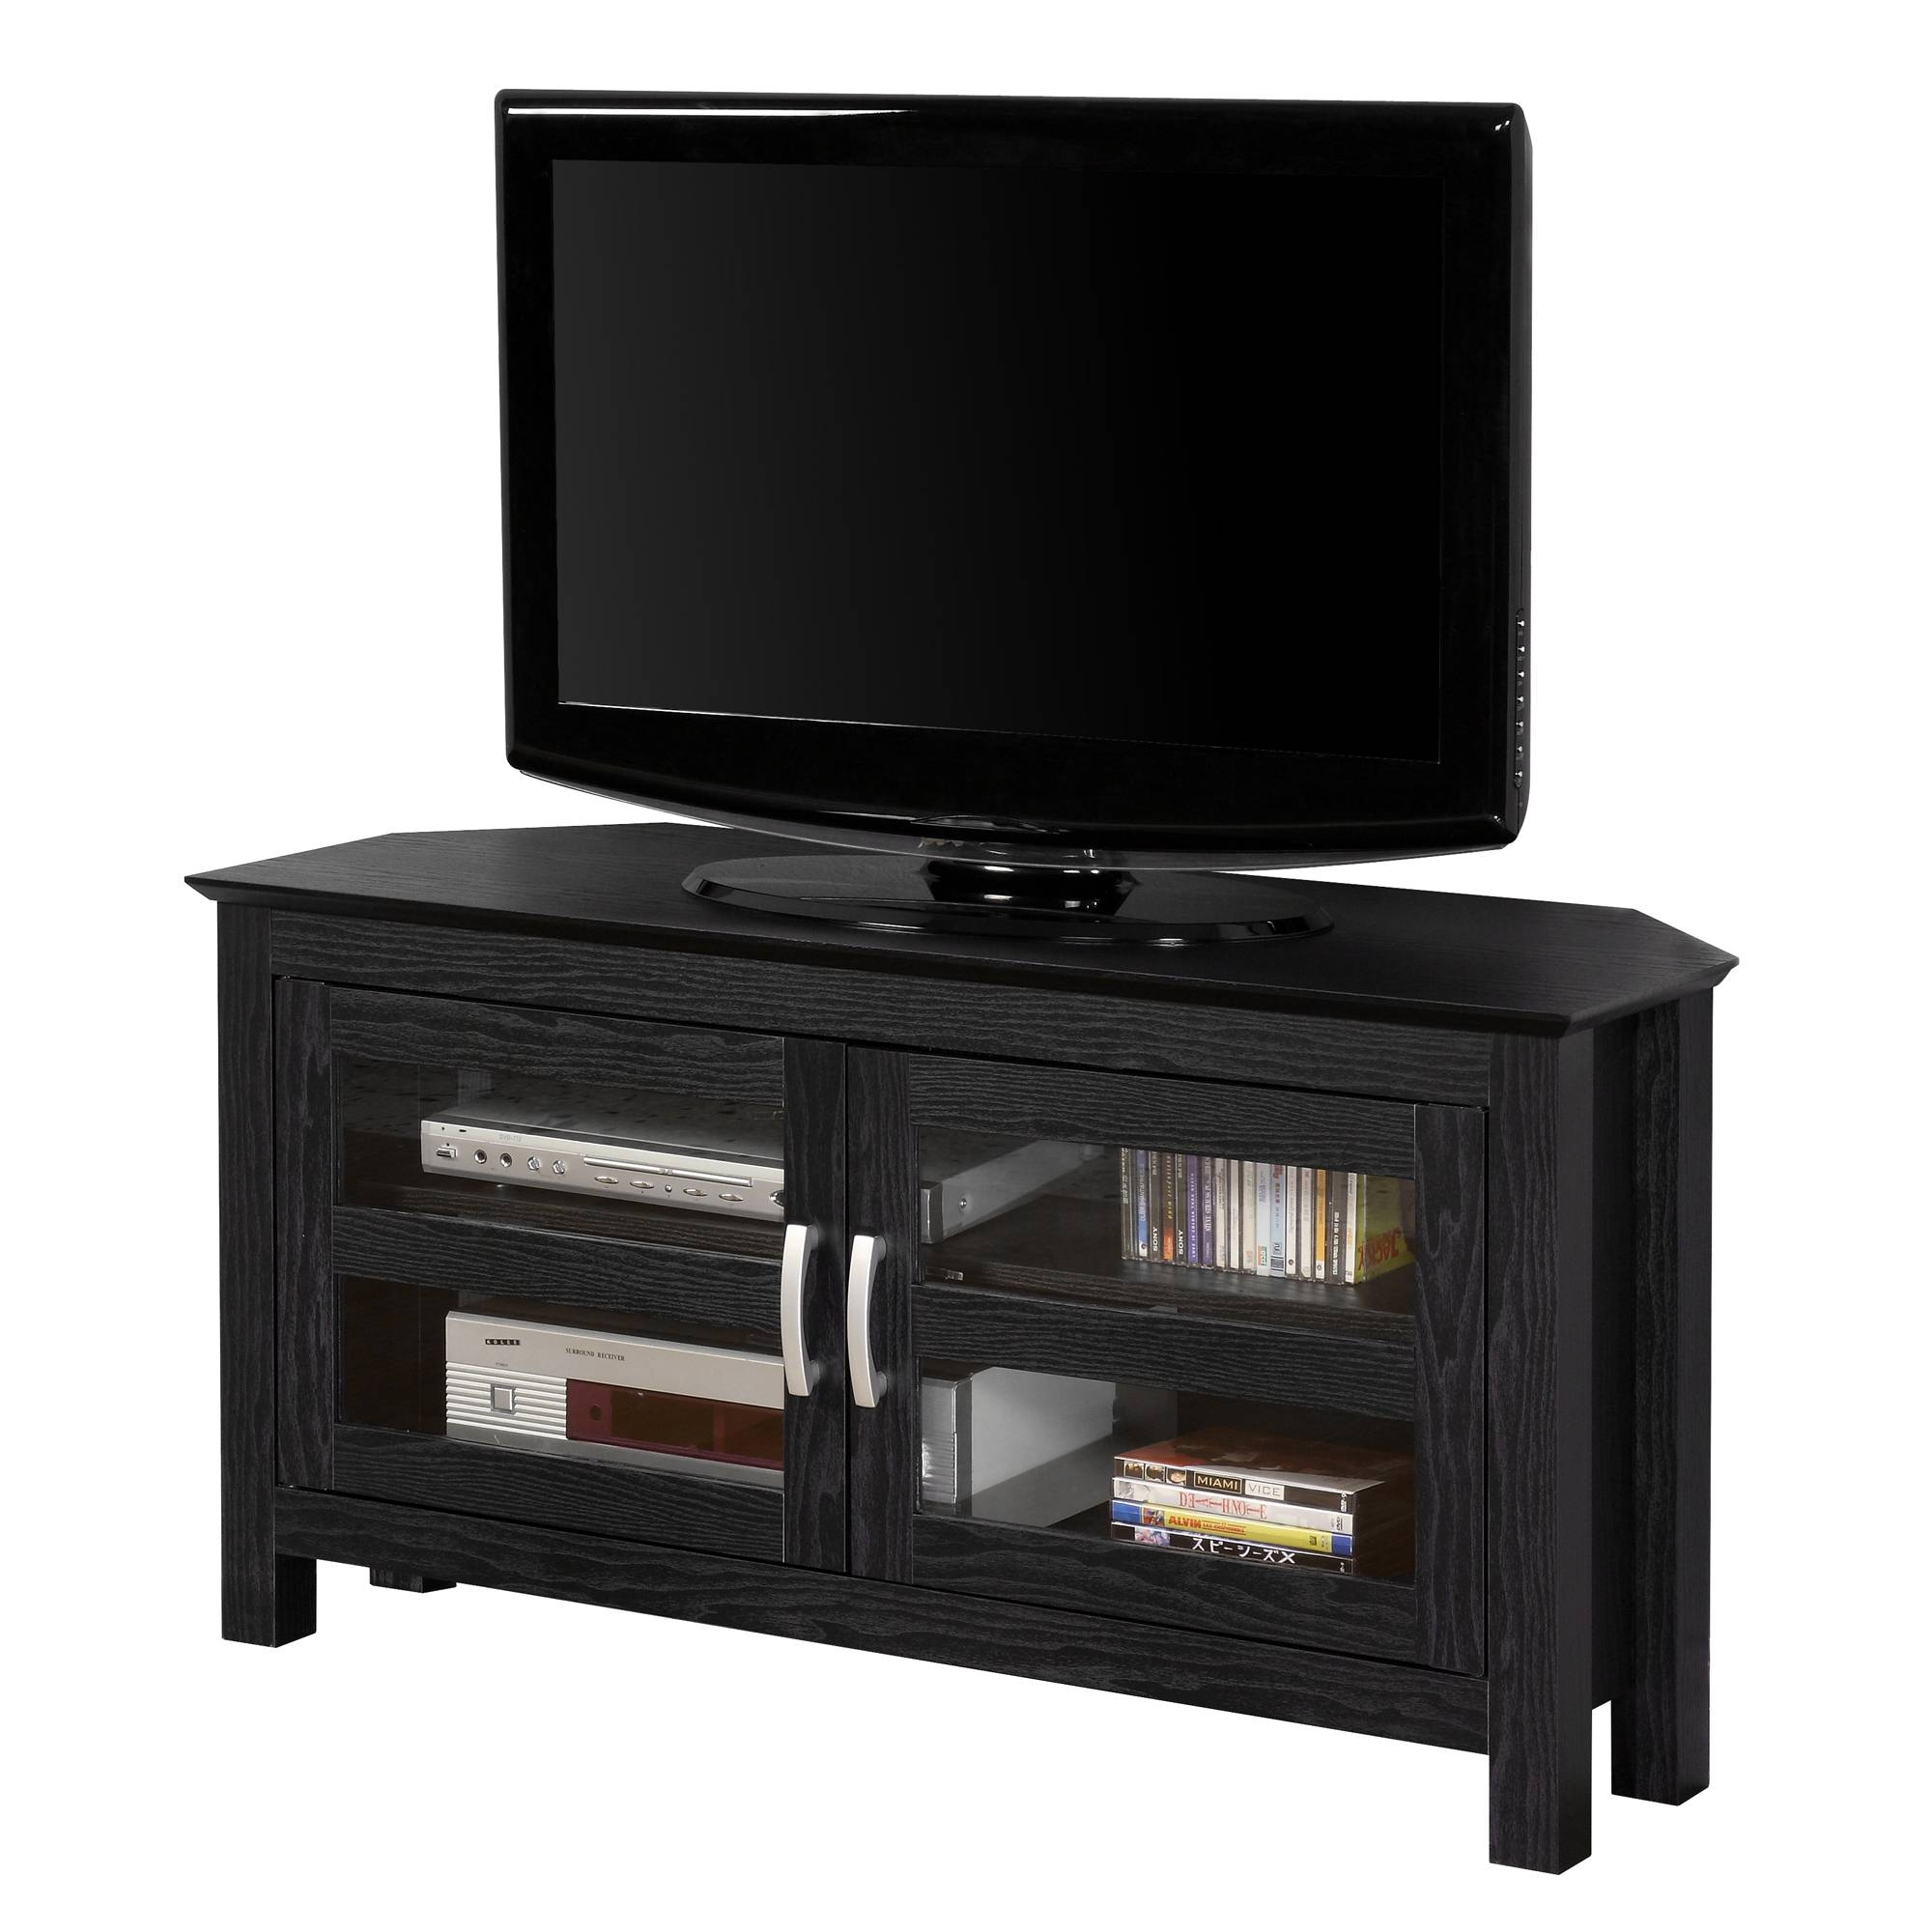 Wood Entertainment Center Corner Tv Stand Stereo Cabinet 44 intended for Black Wood Corner Tv Stands (Image 15 of 15)